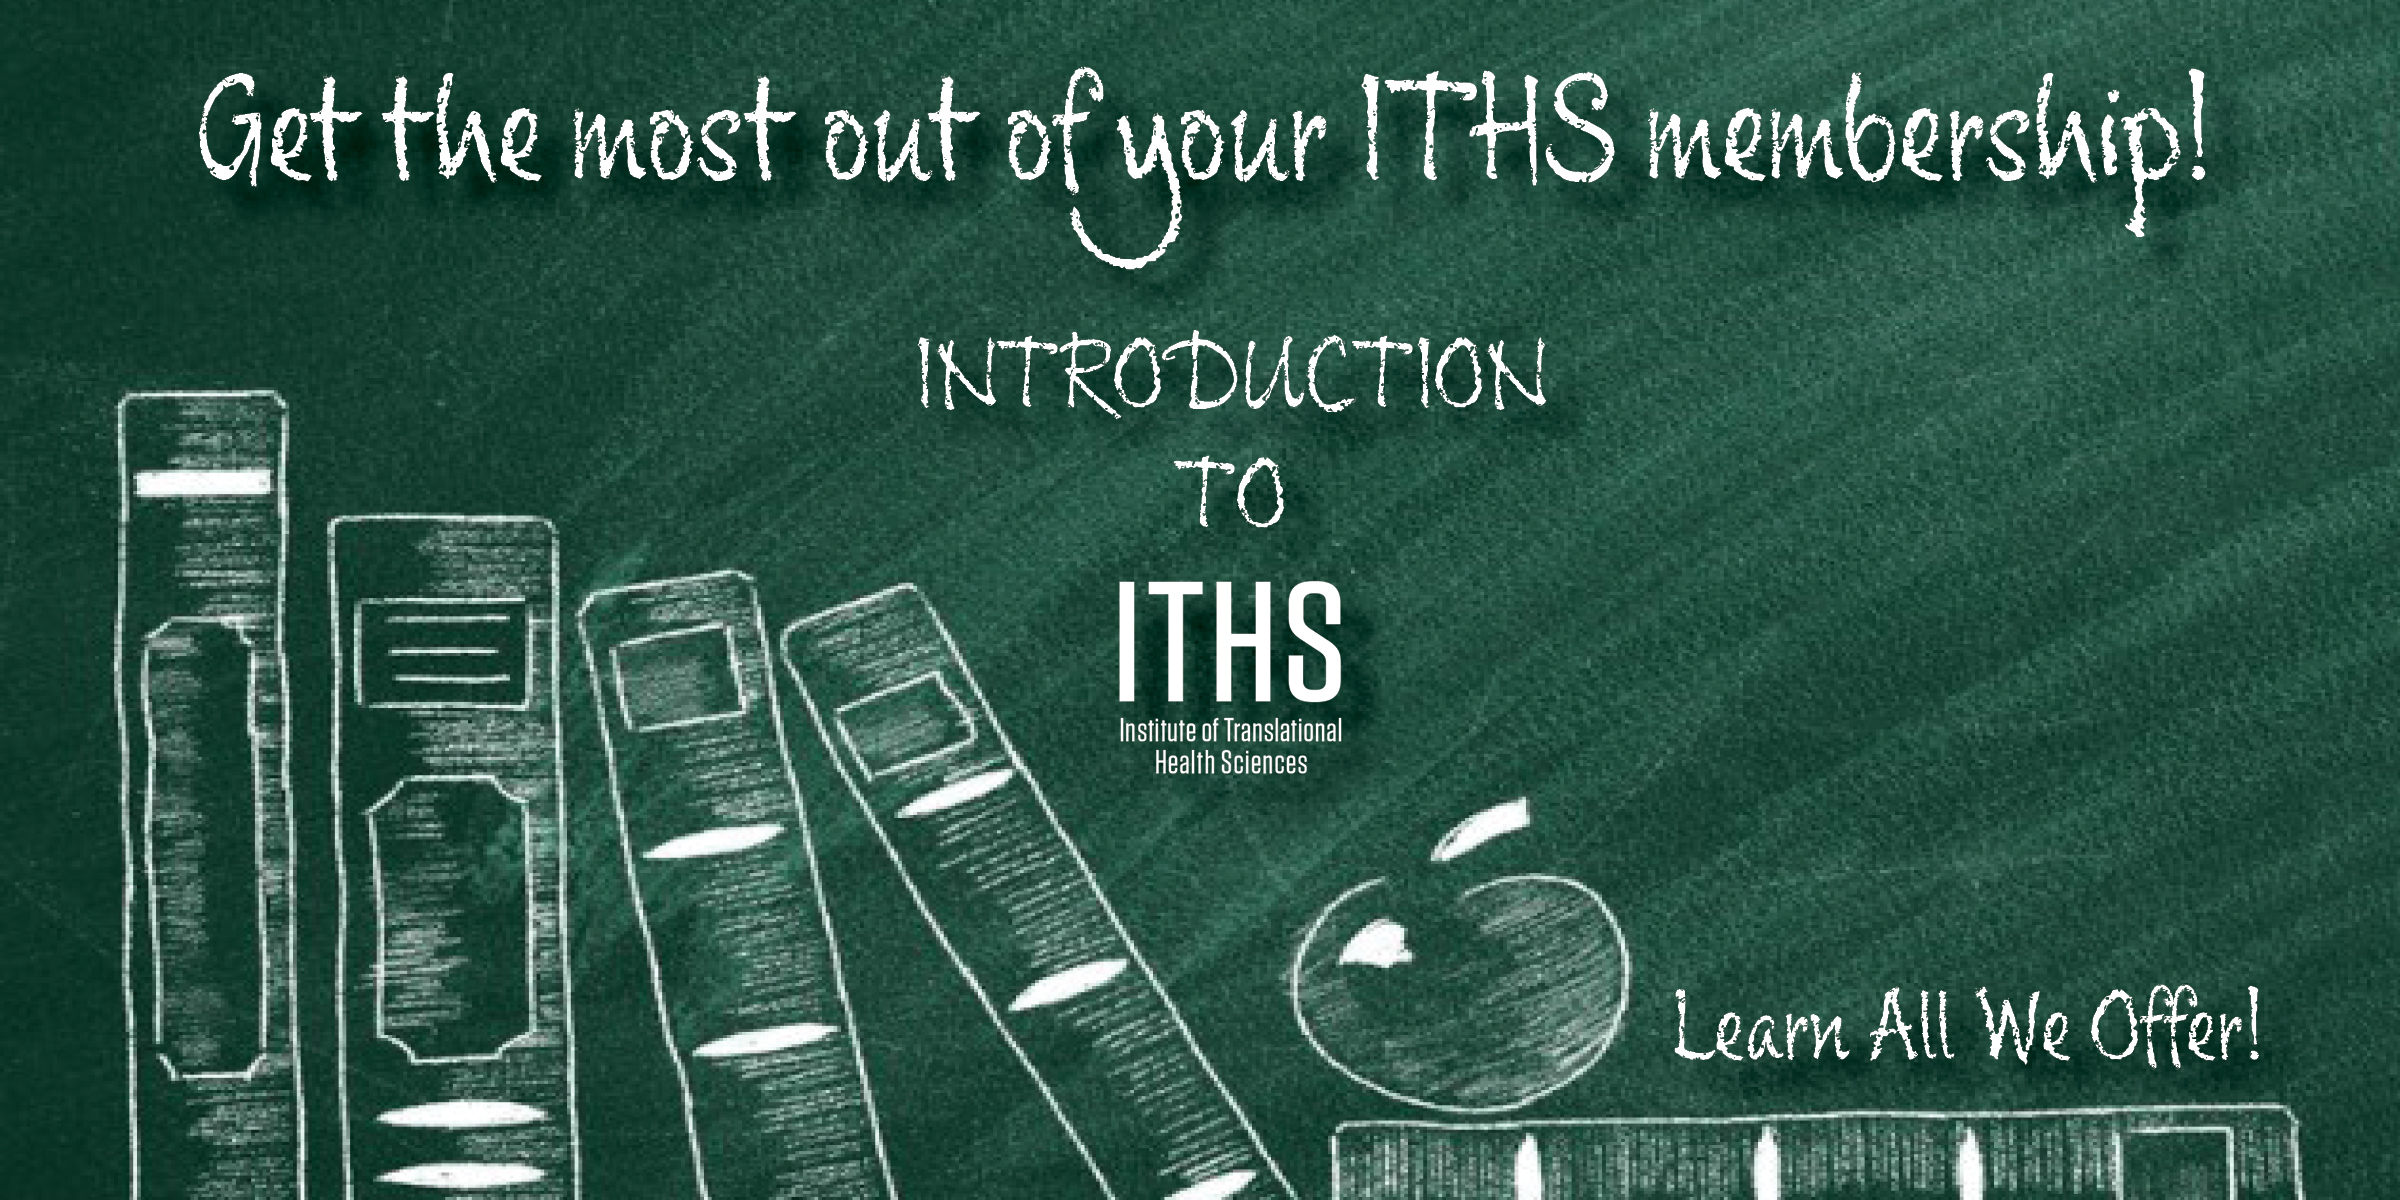 Introduction to ITHS @ On-Line Event